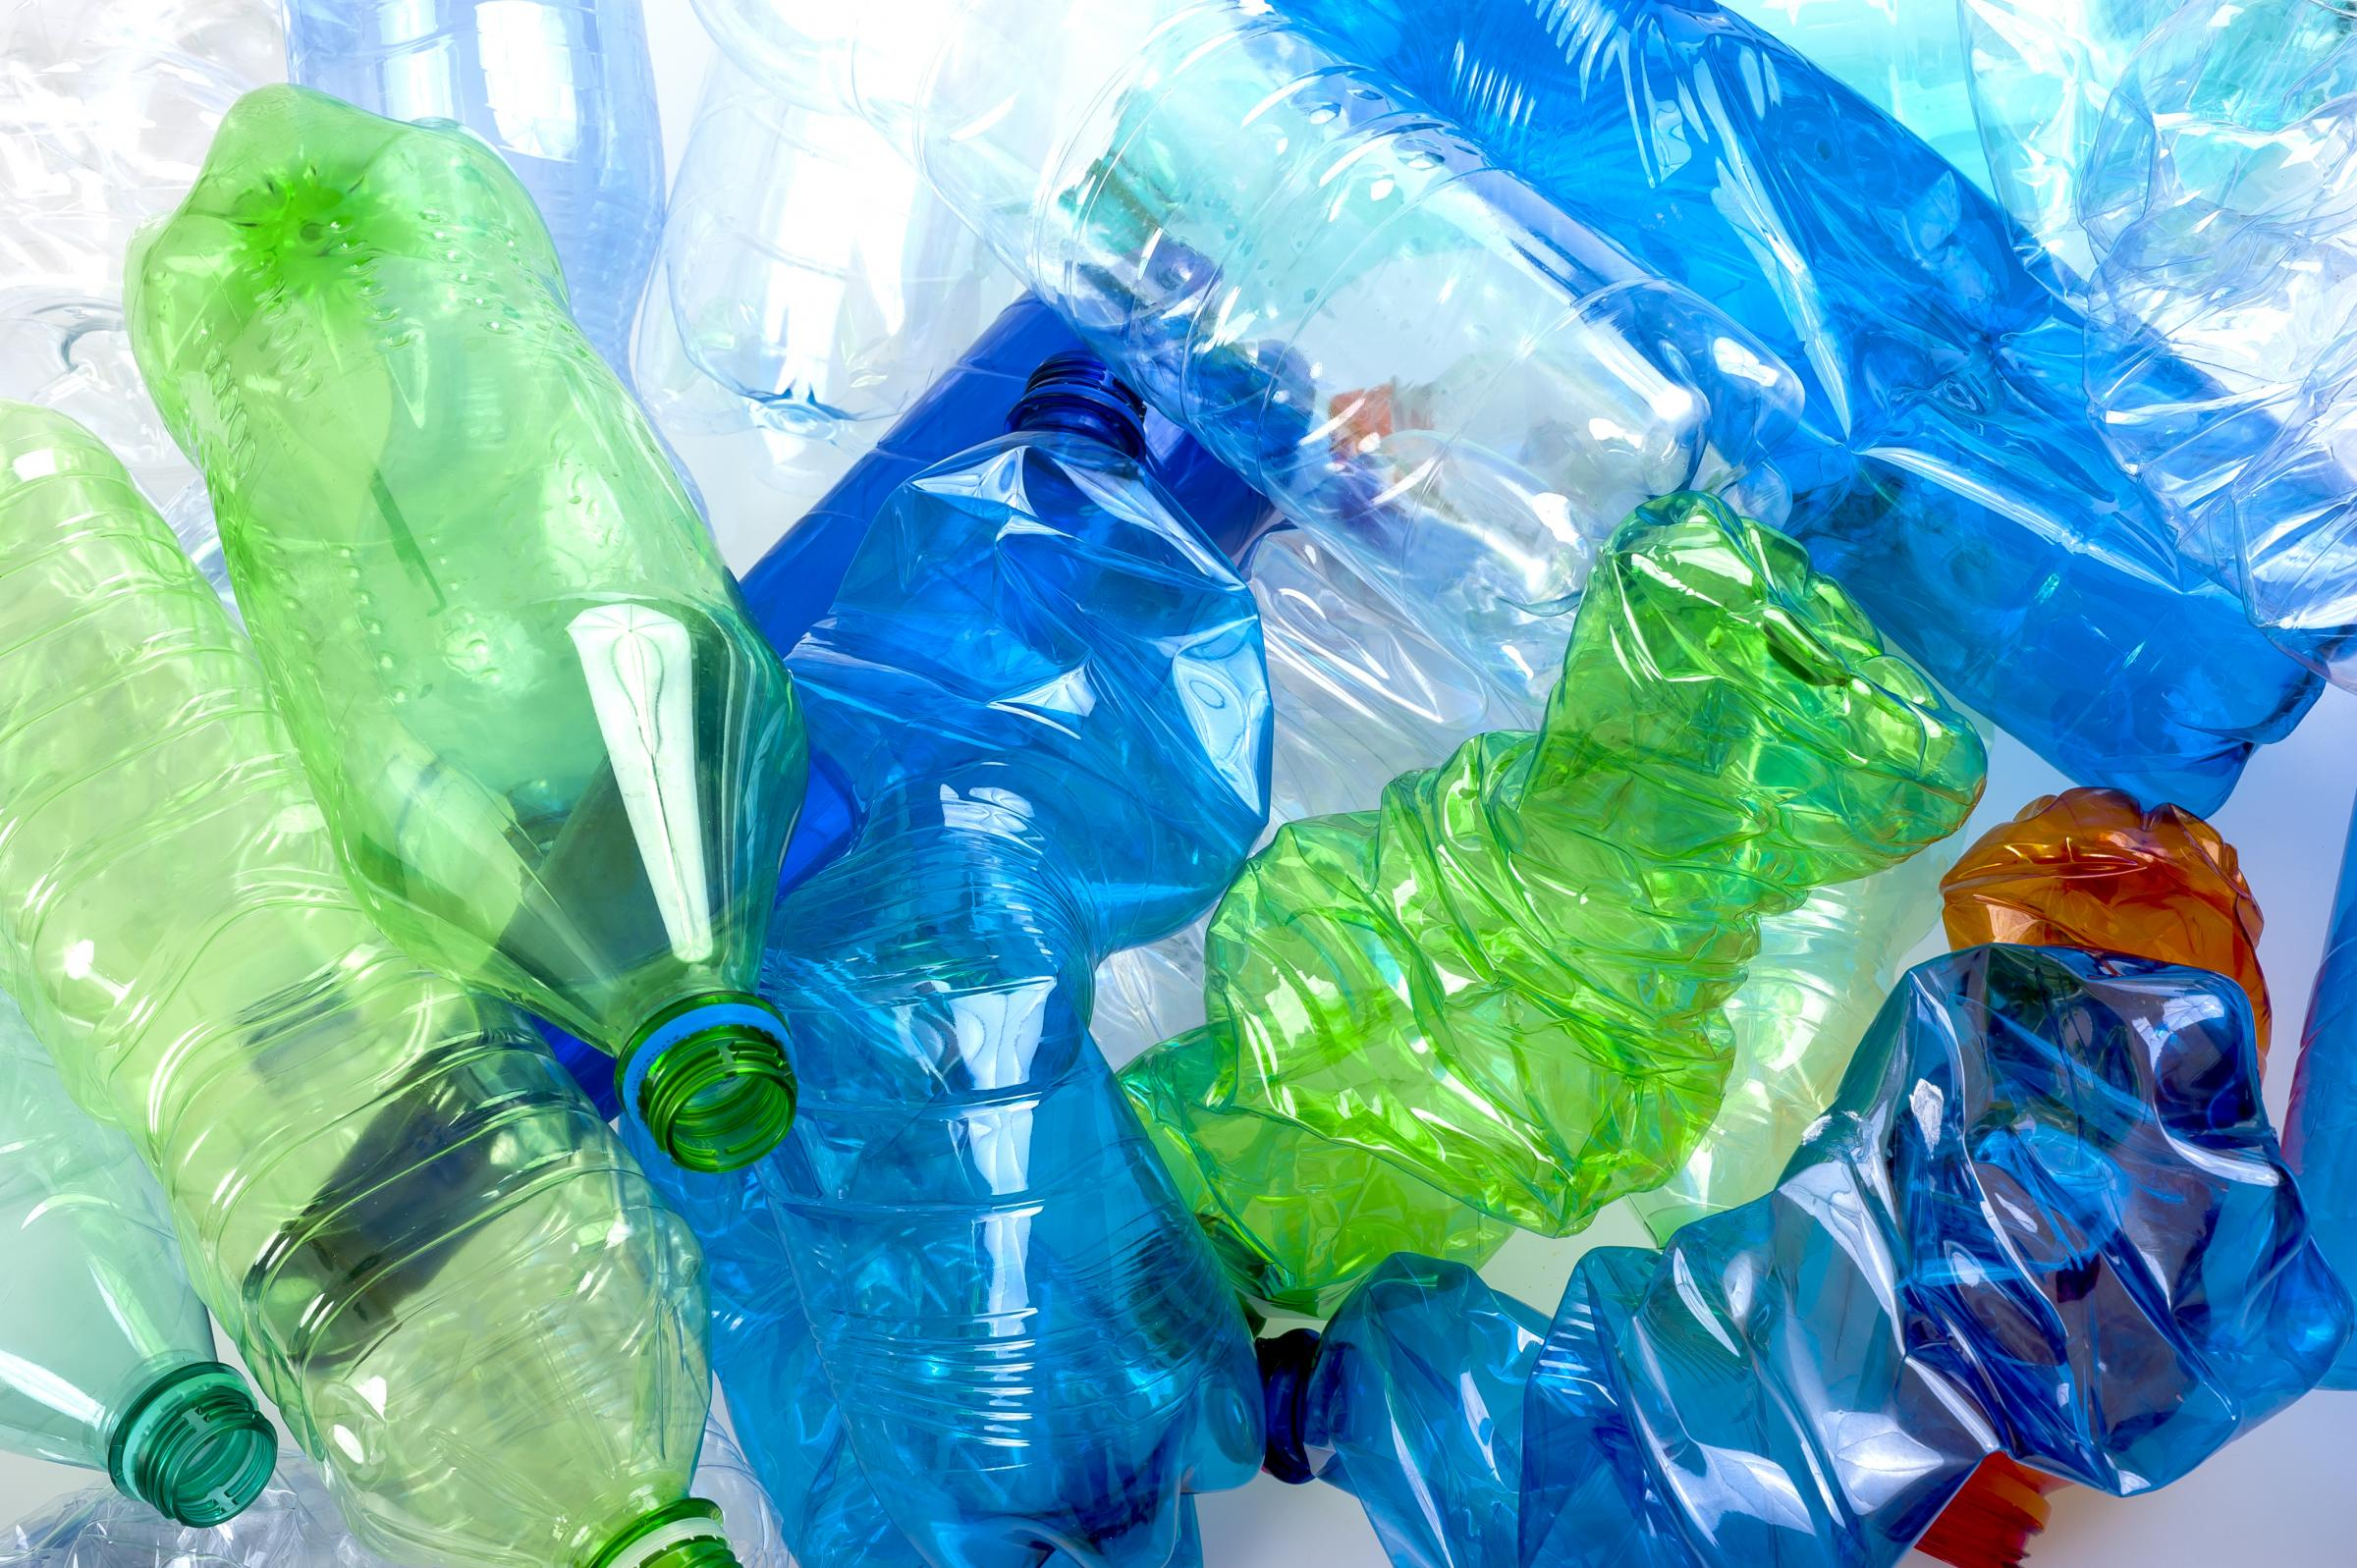 Plastic bottles will be recycled.